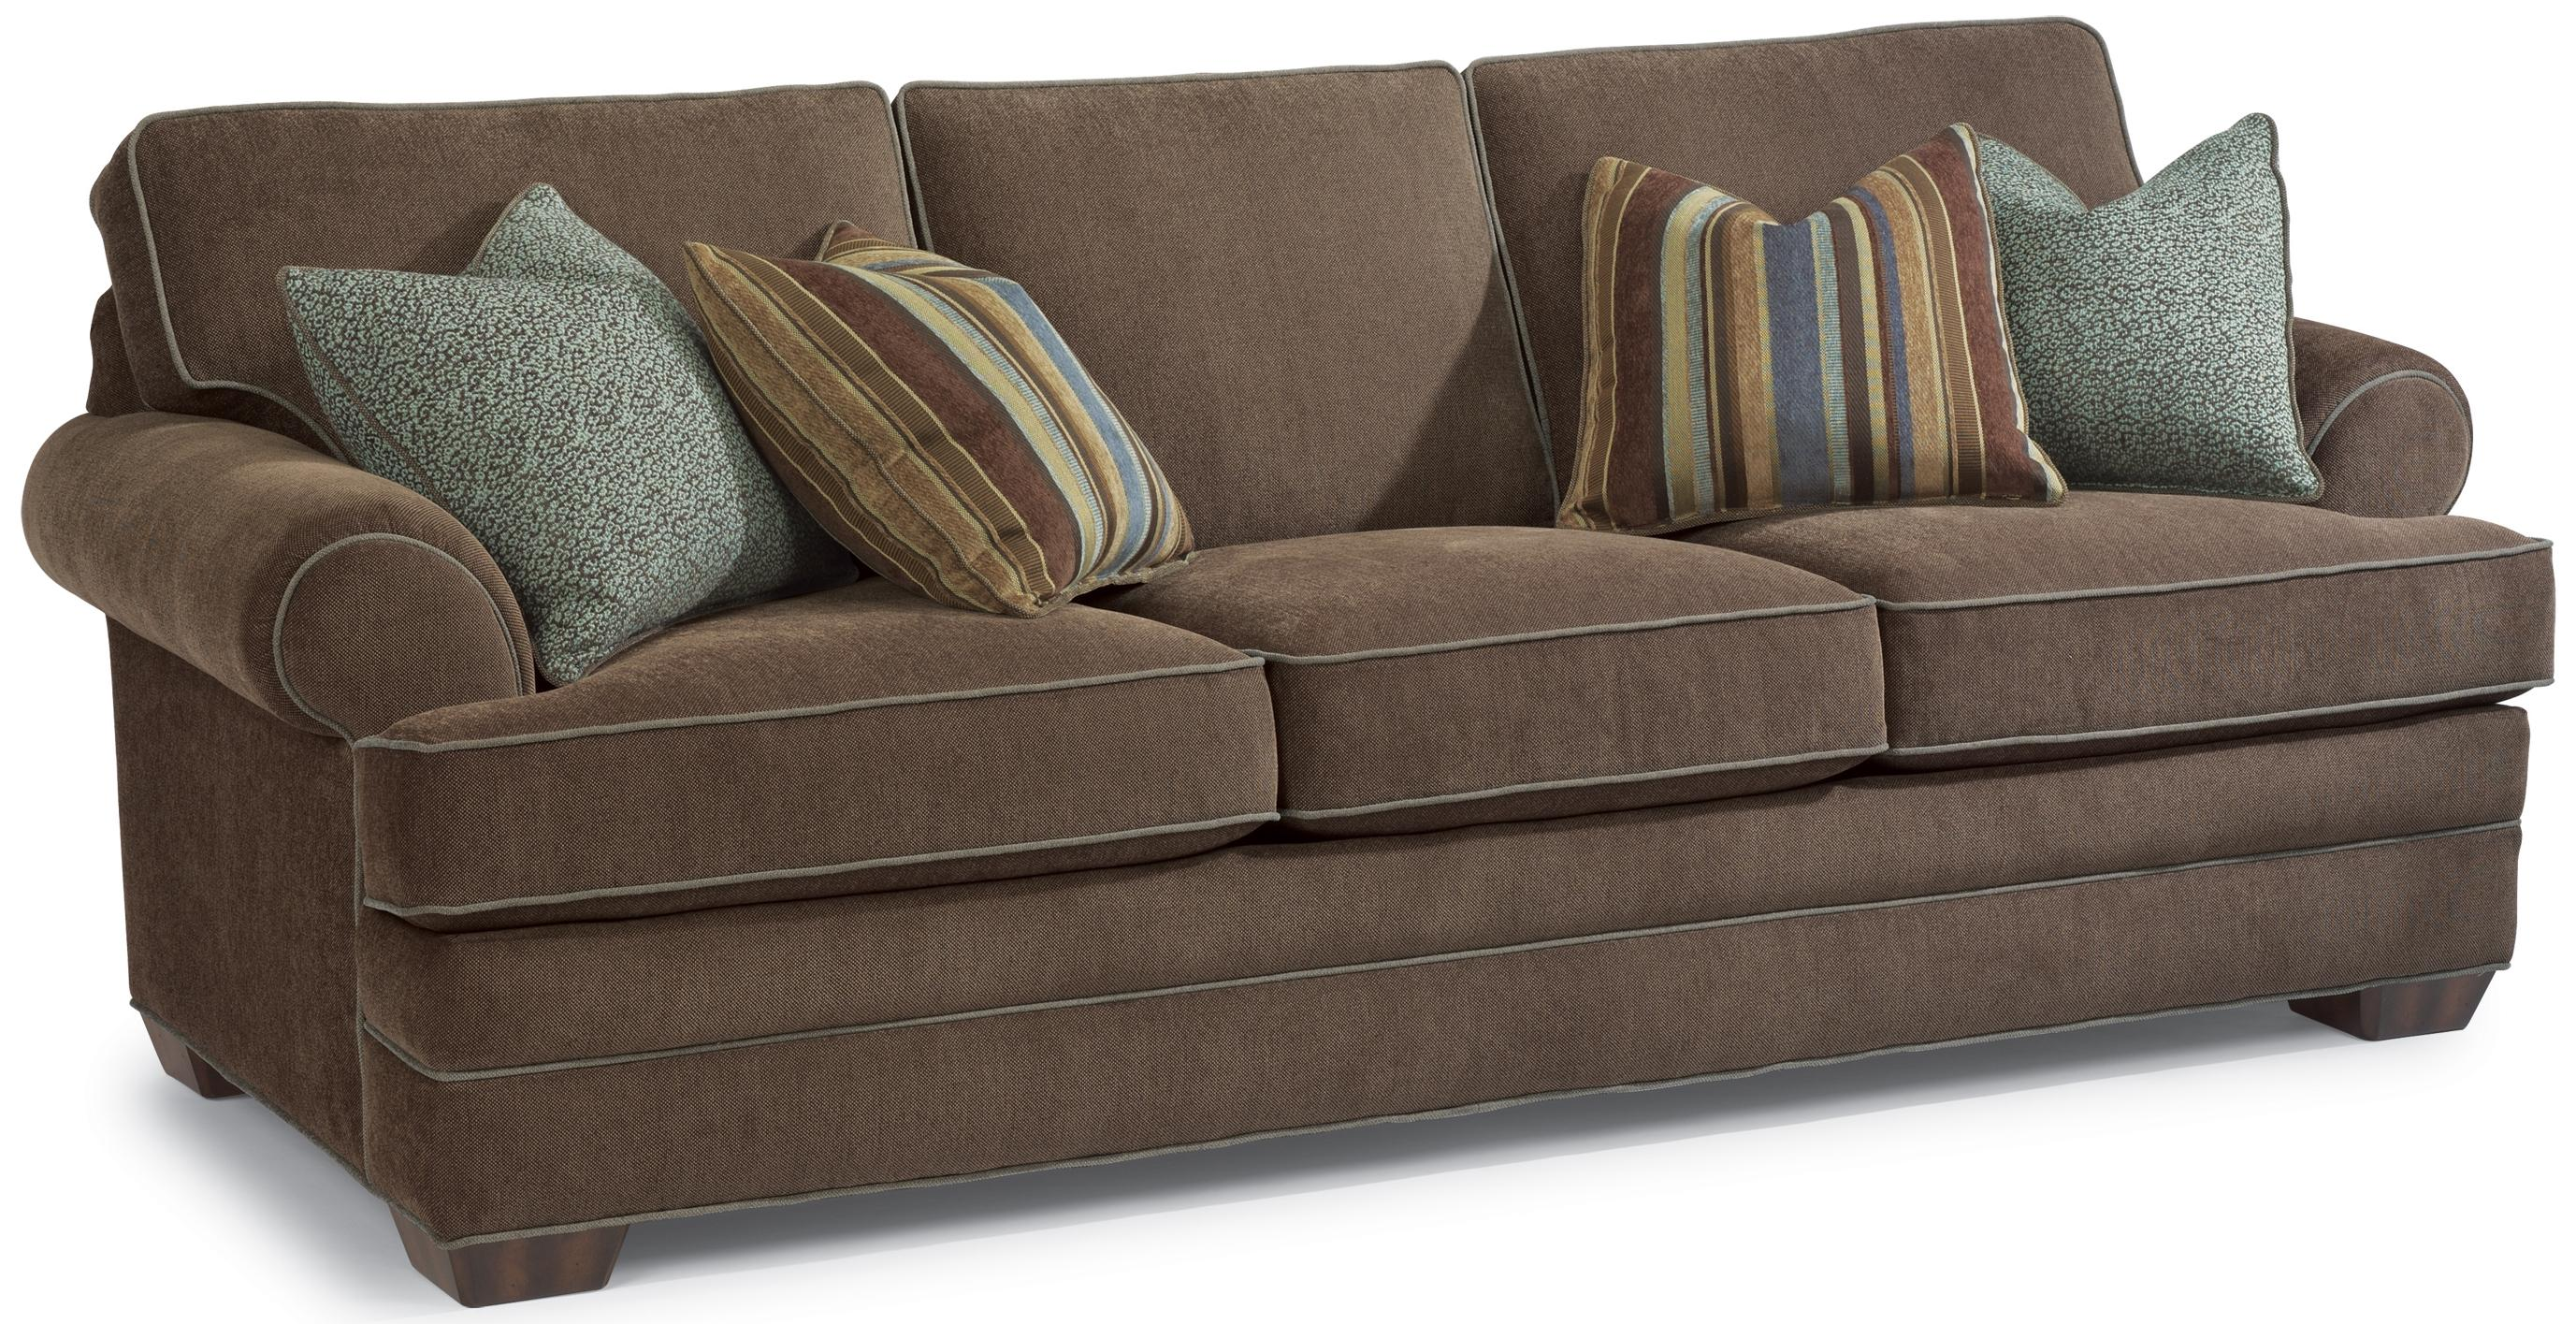 at pin buy couches pinterest furniture gardens direct couch flexsteel available